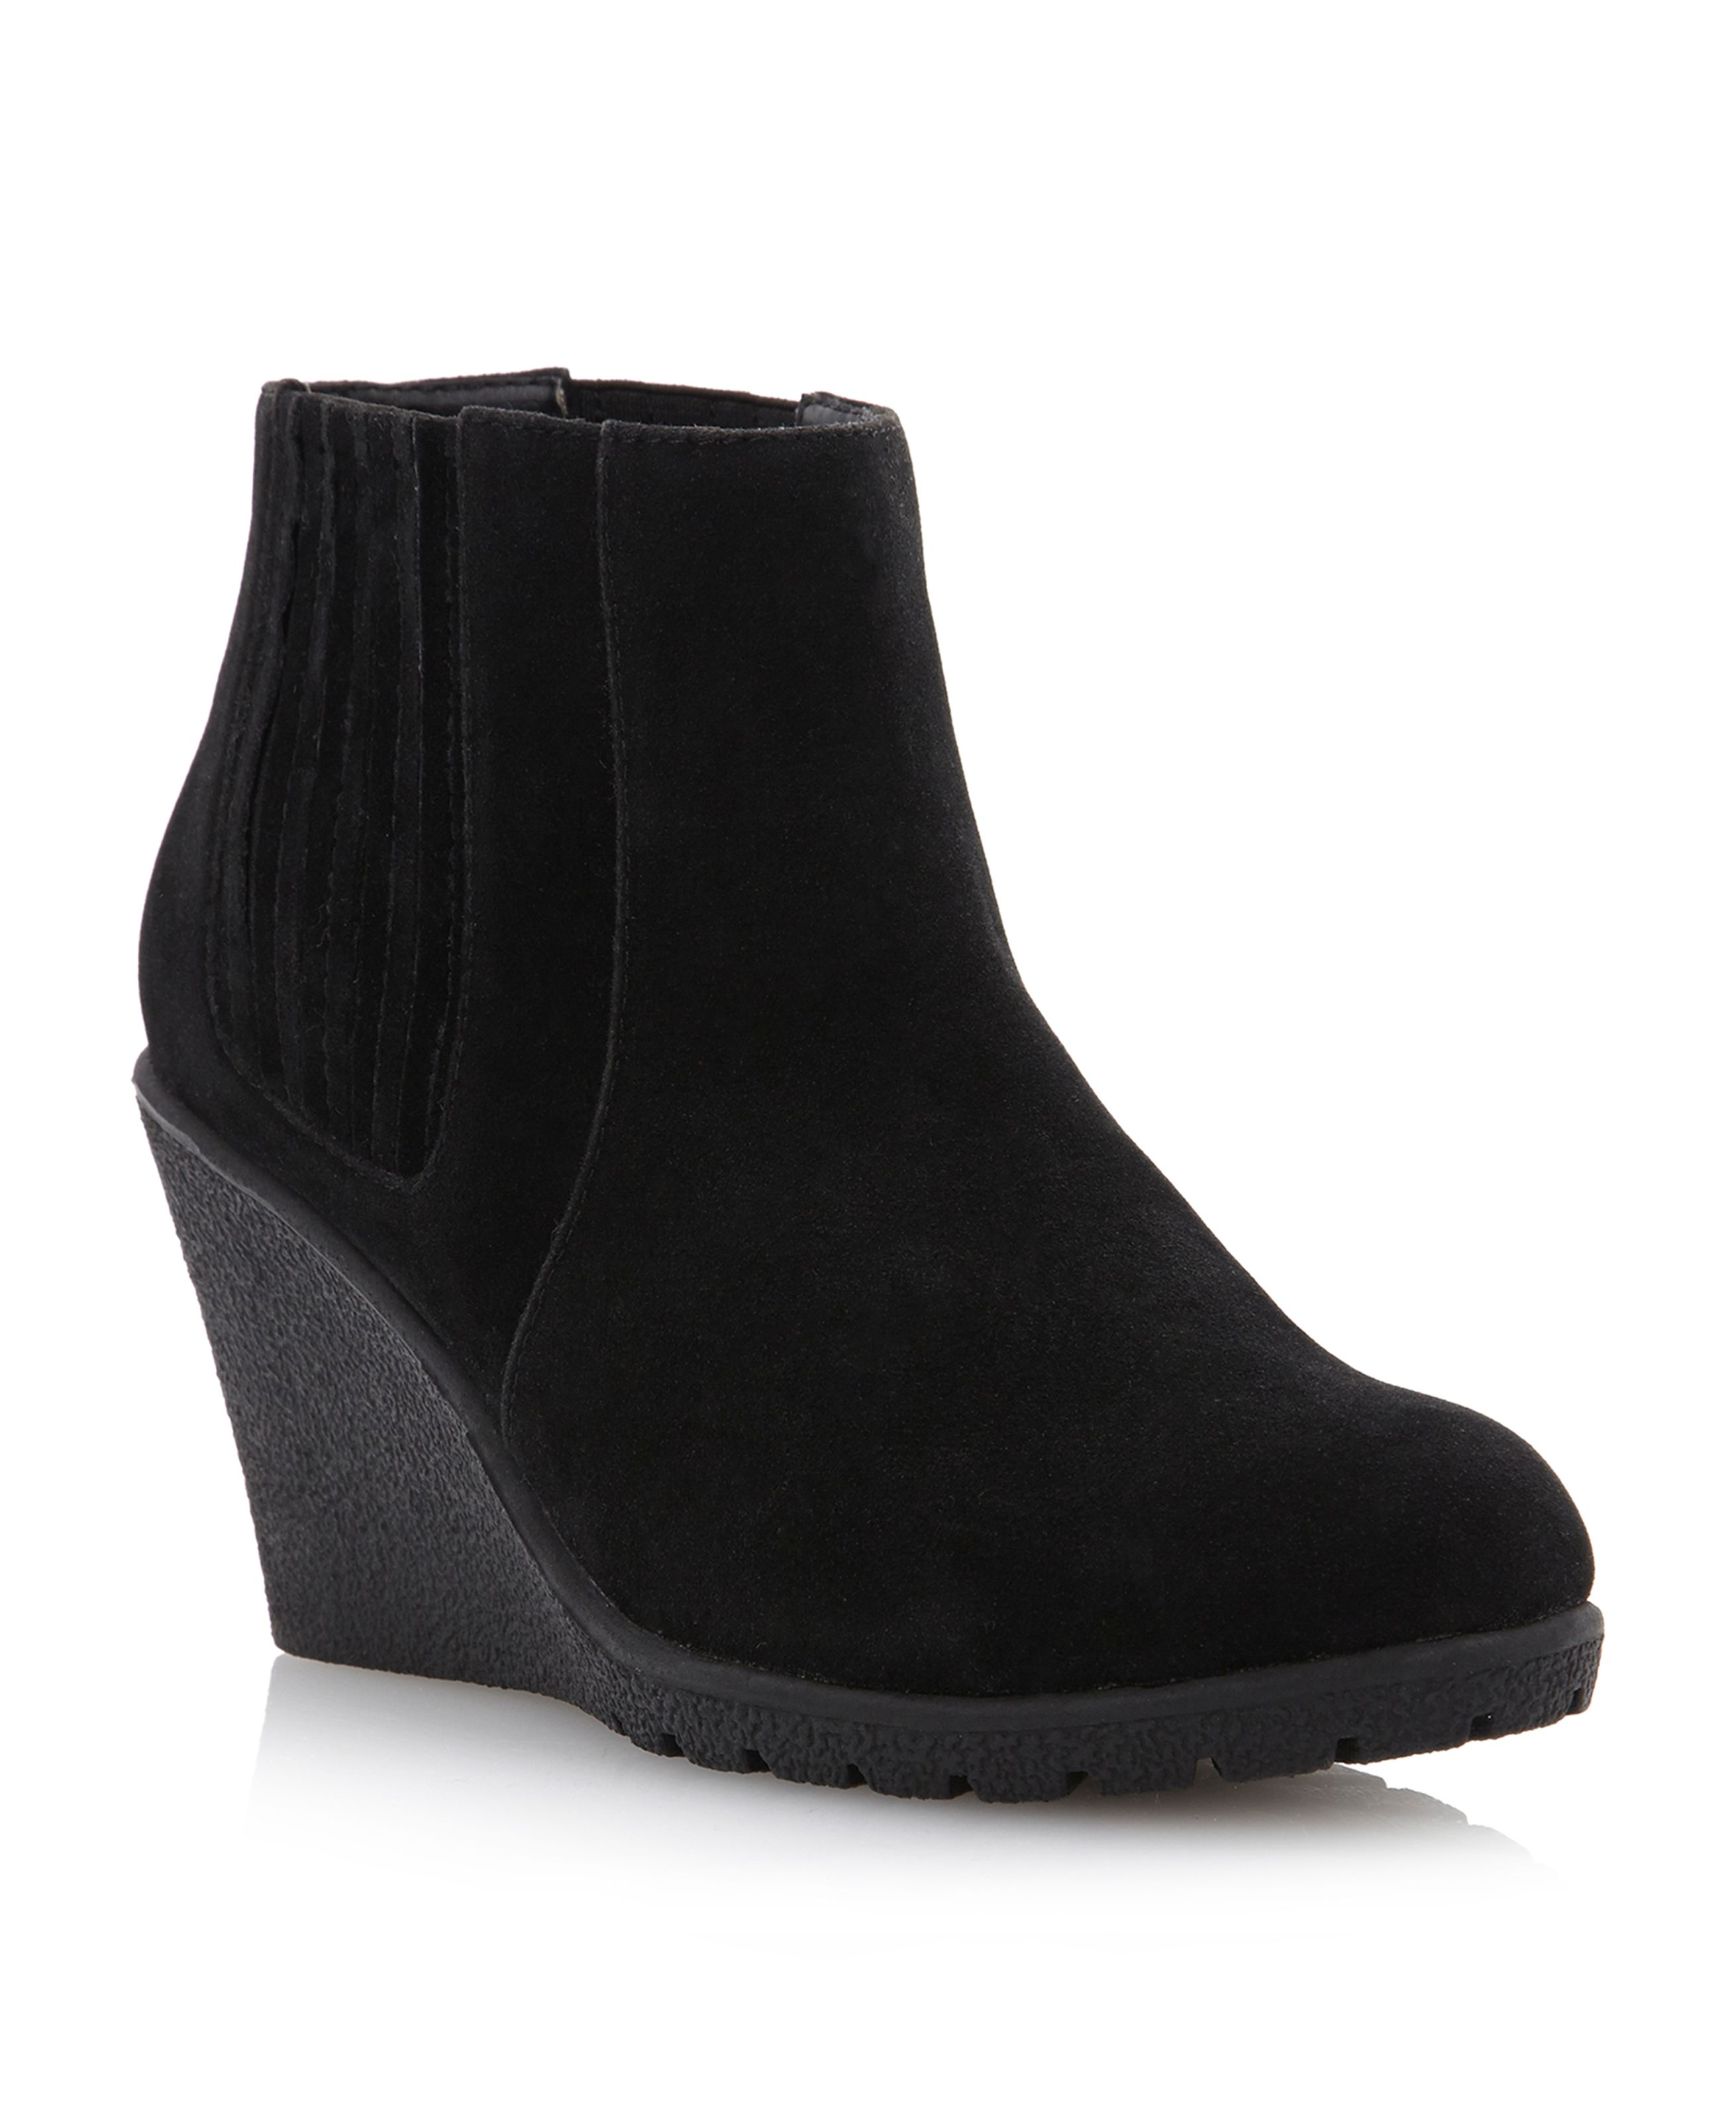 Pamplona side gusset crepe wedge boots